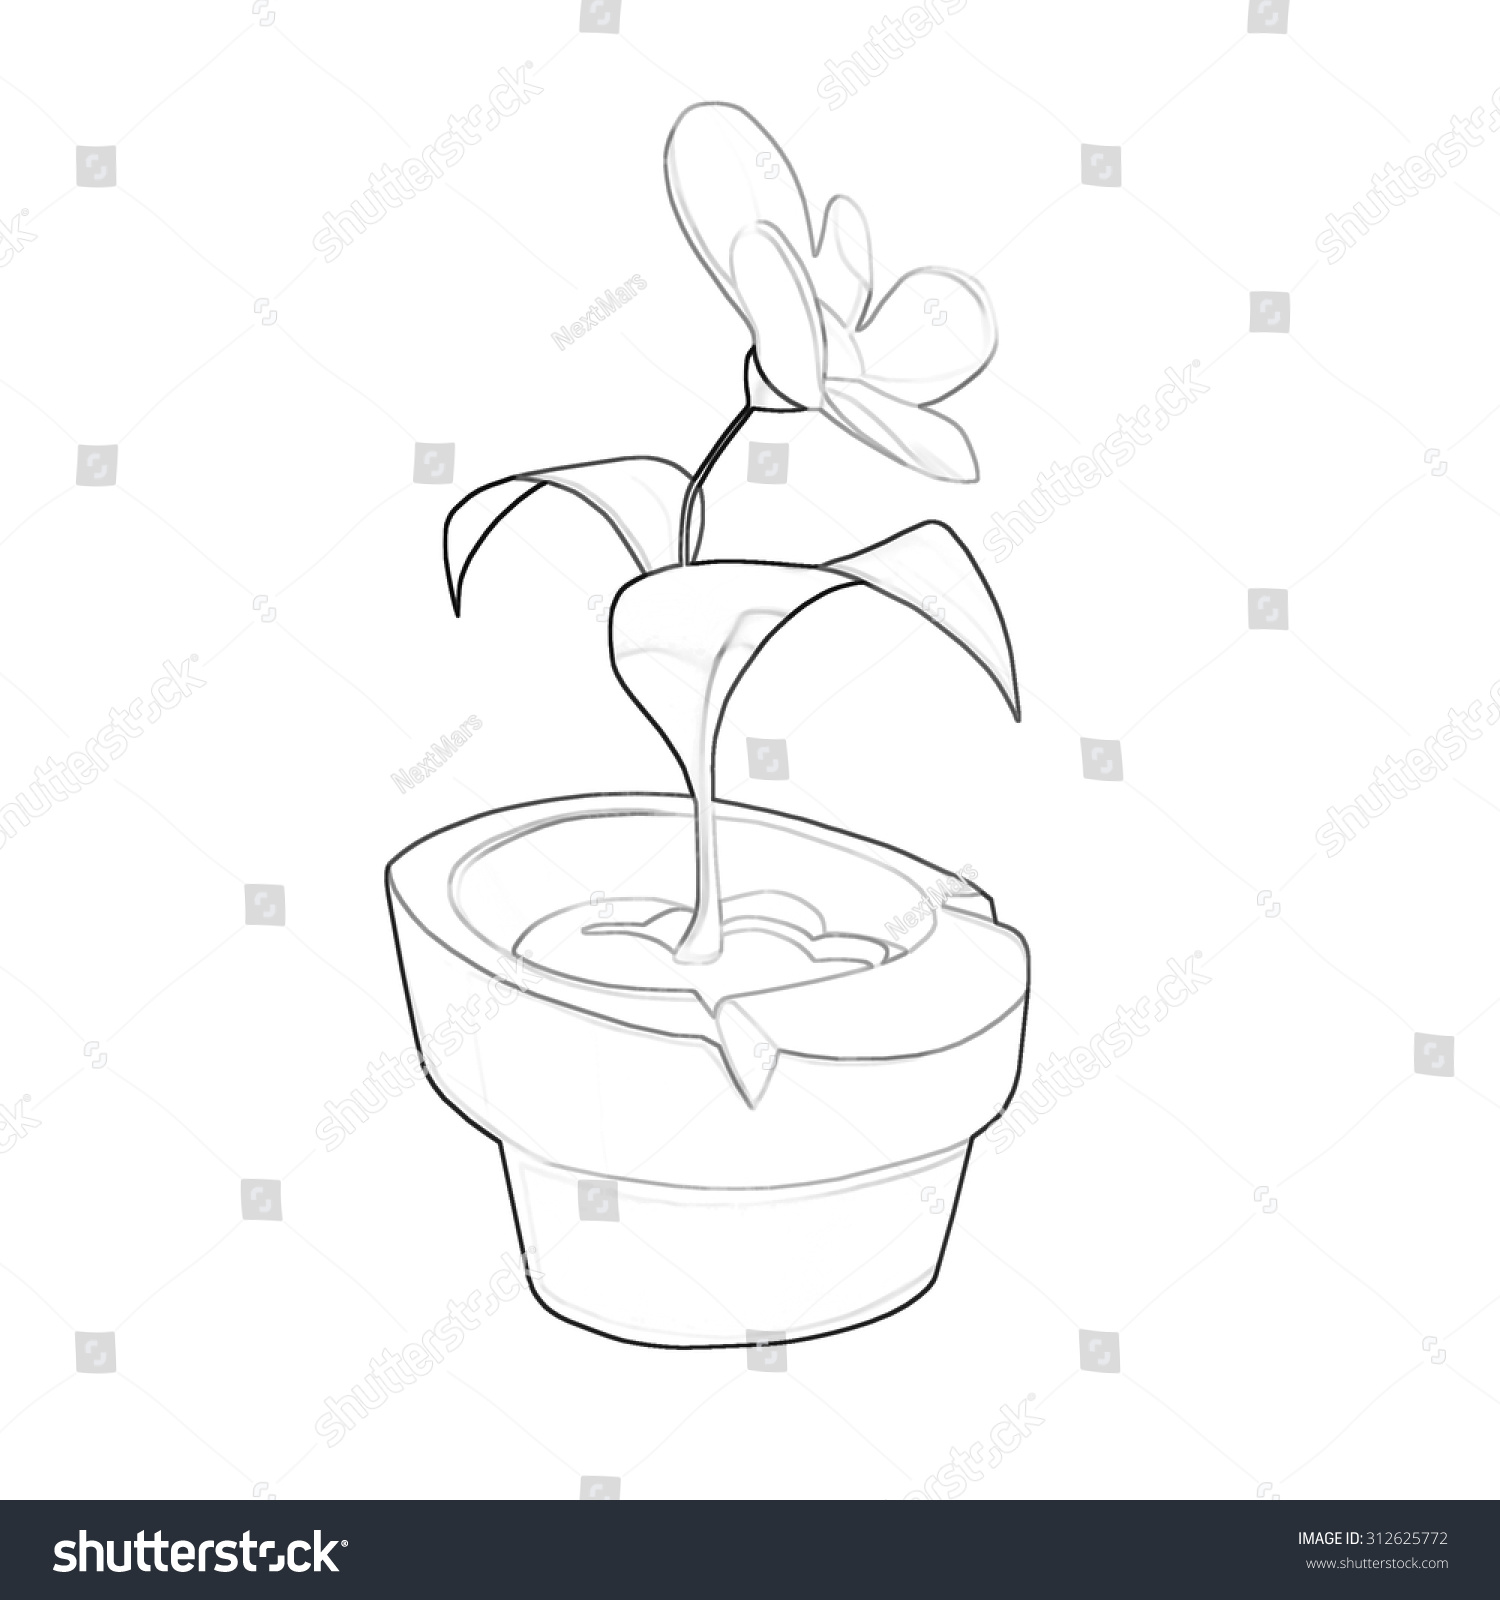 Illustration Coloring Book Series Potted Flower Stock Illustration ...